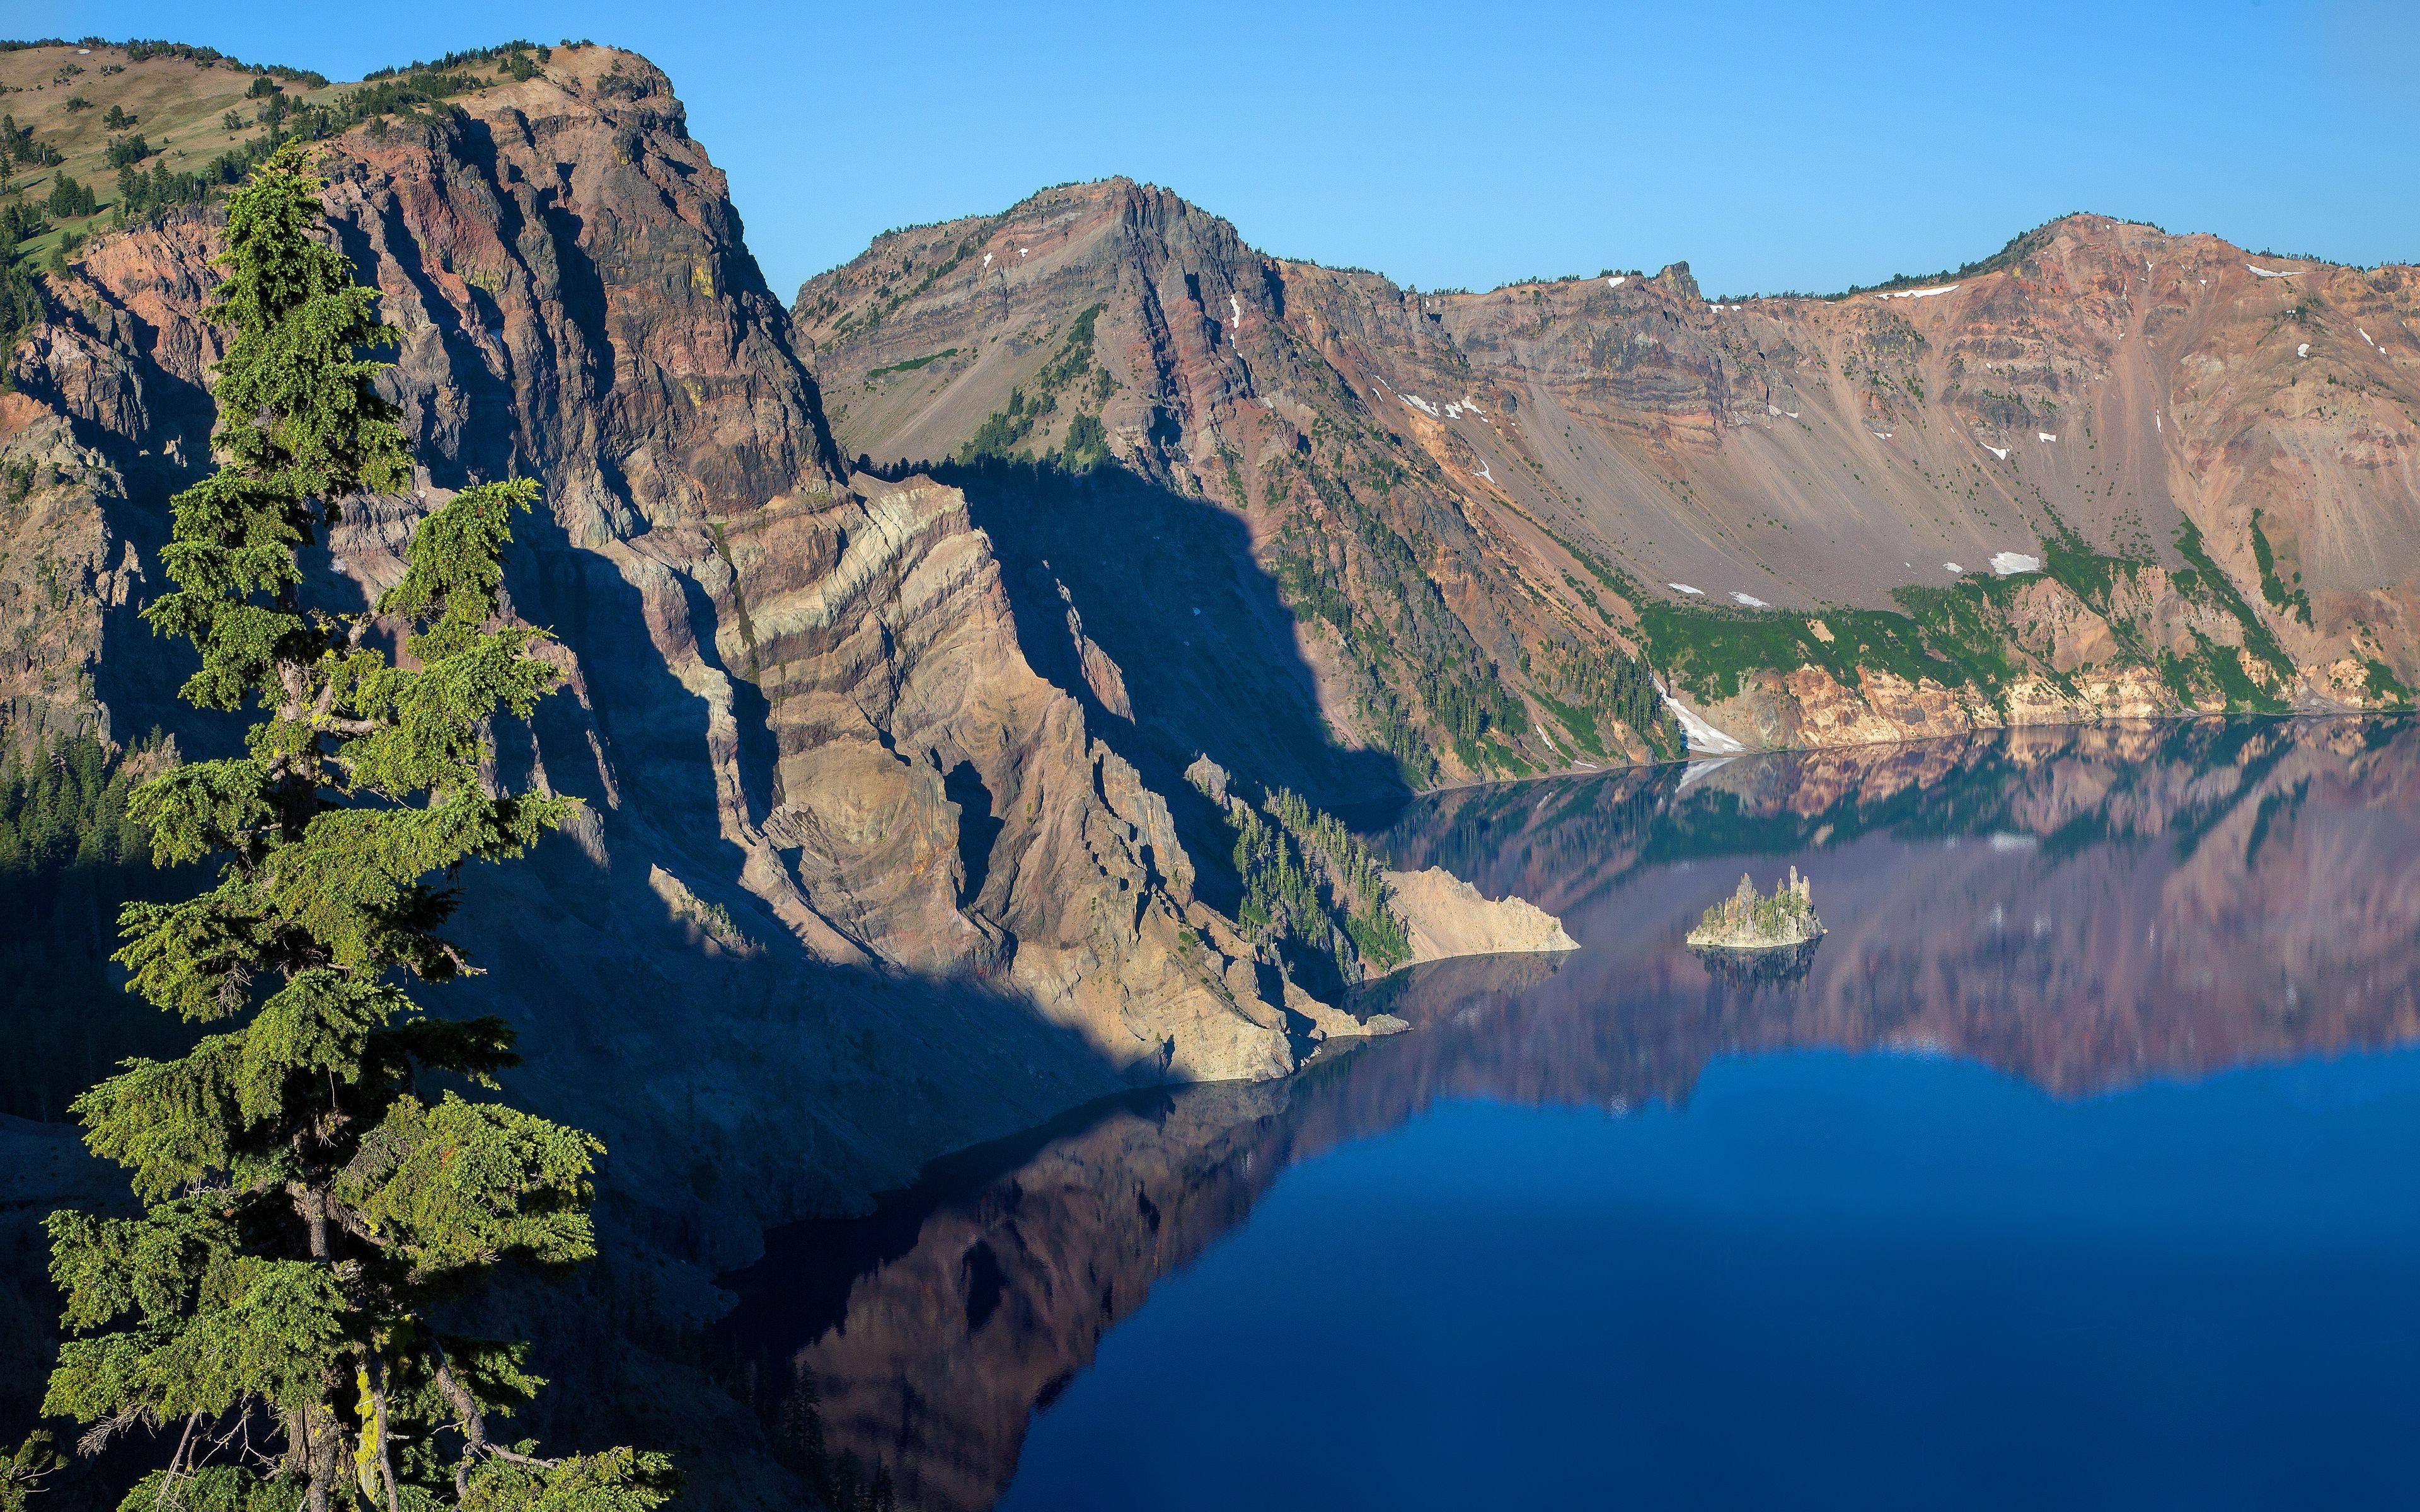 Crater Lake National Park in Oregon, USA wallpapers and images ...